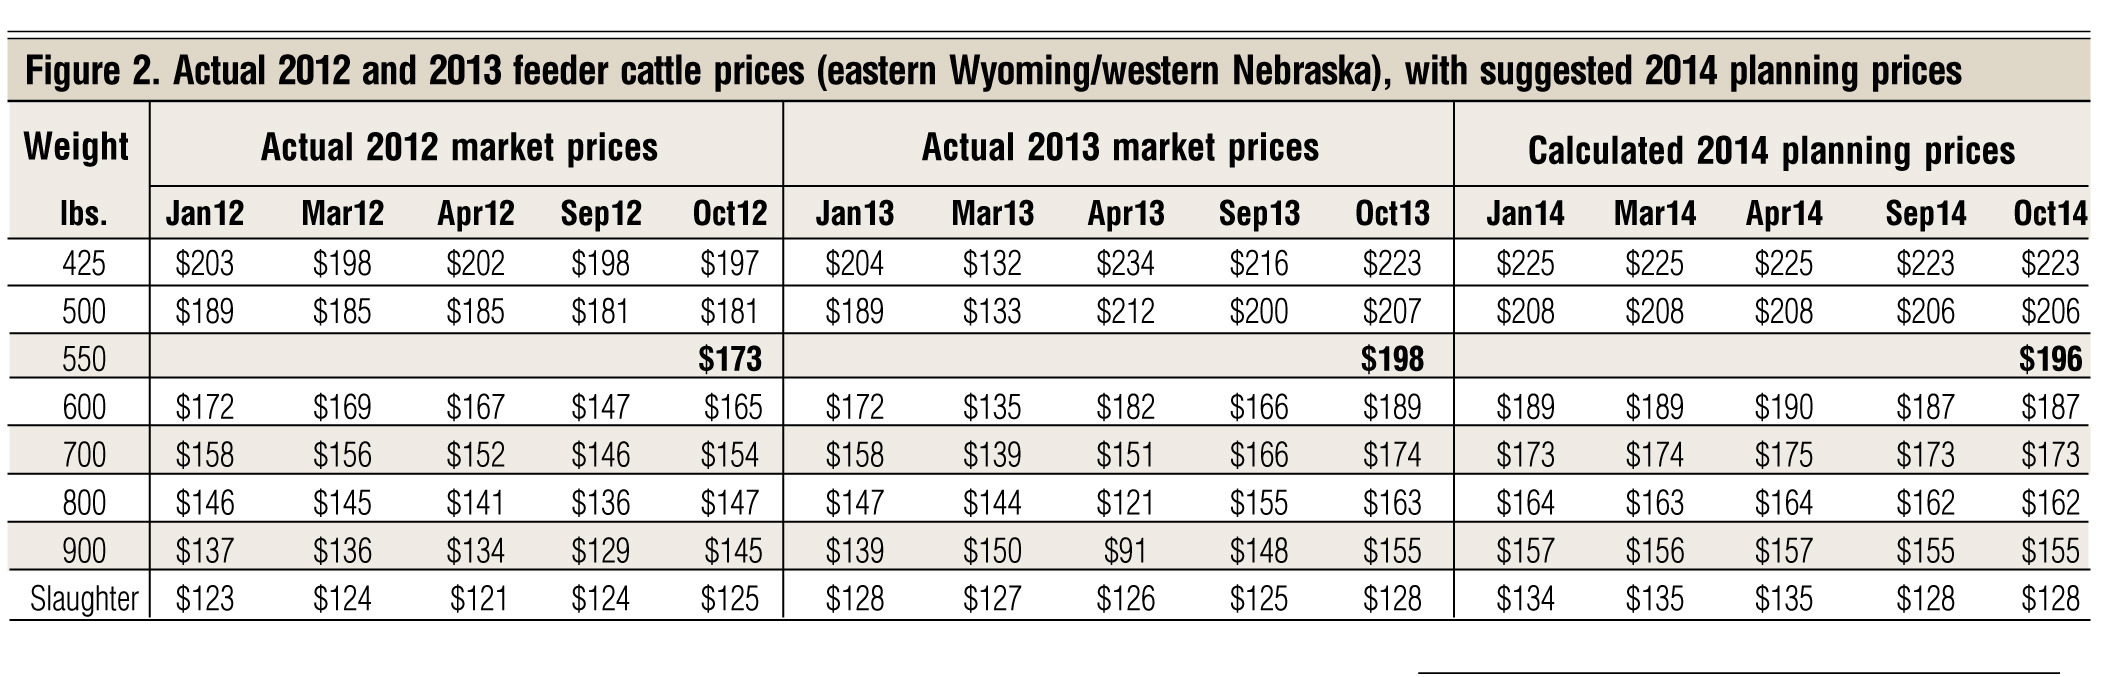 planning prices for selling 2014 calves